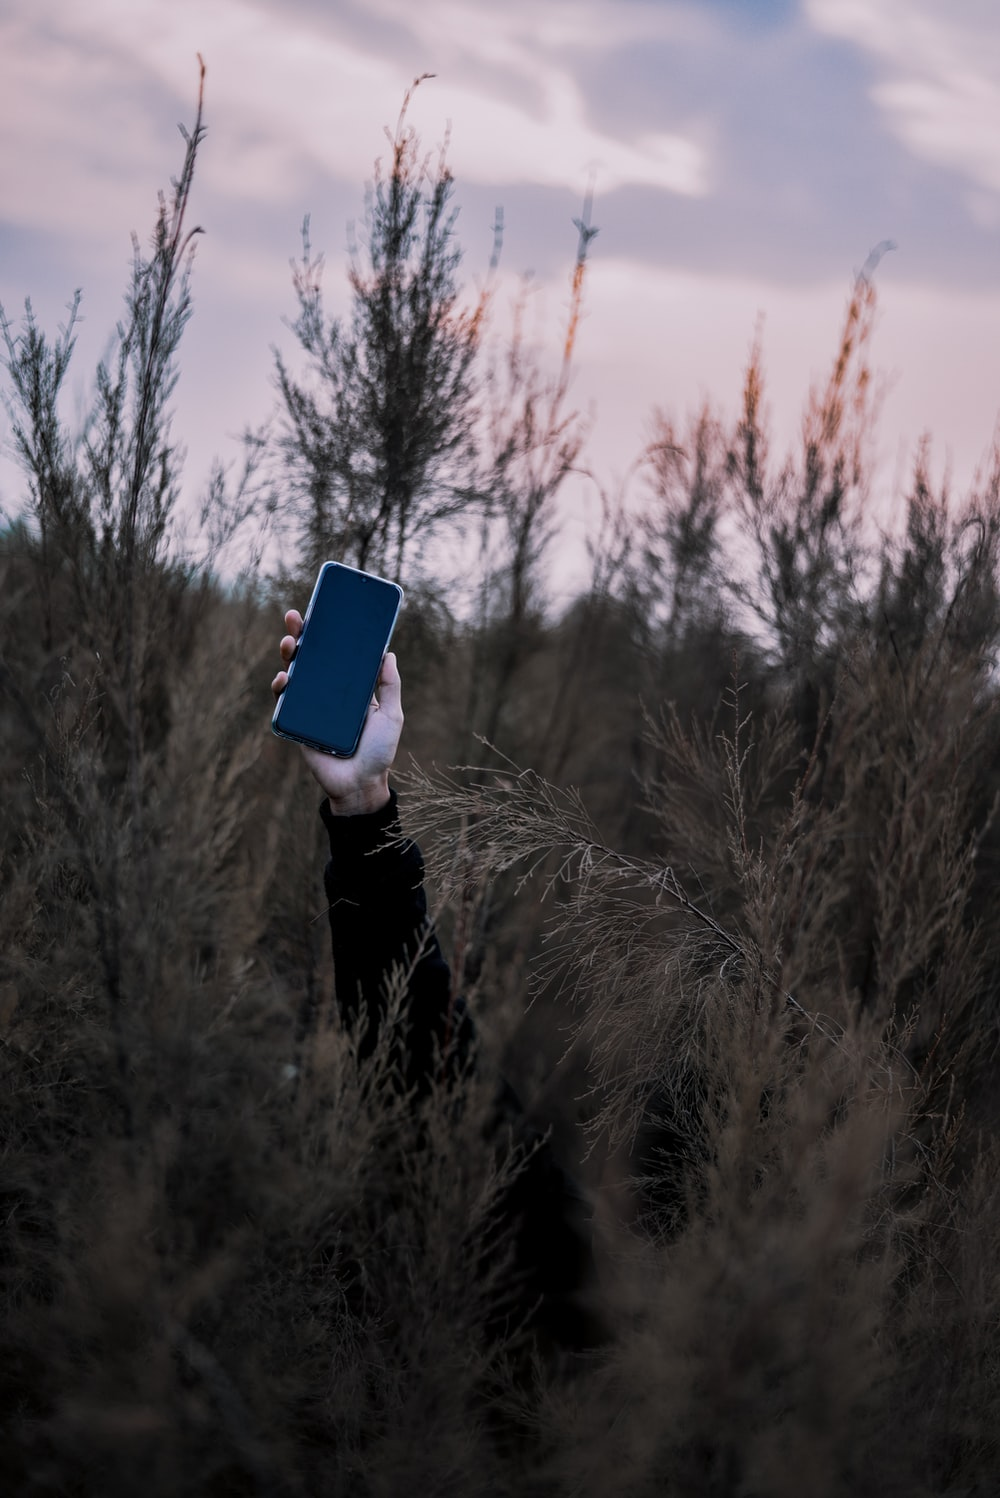 person raising phone on forest